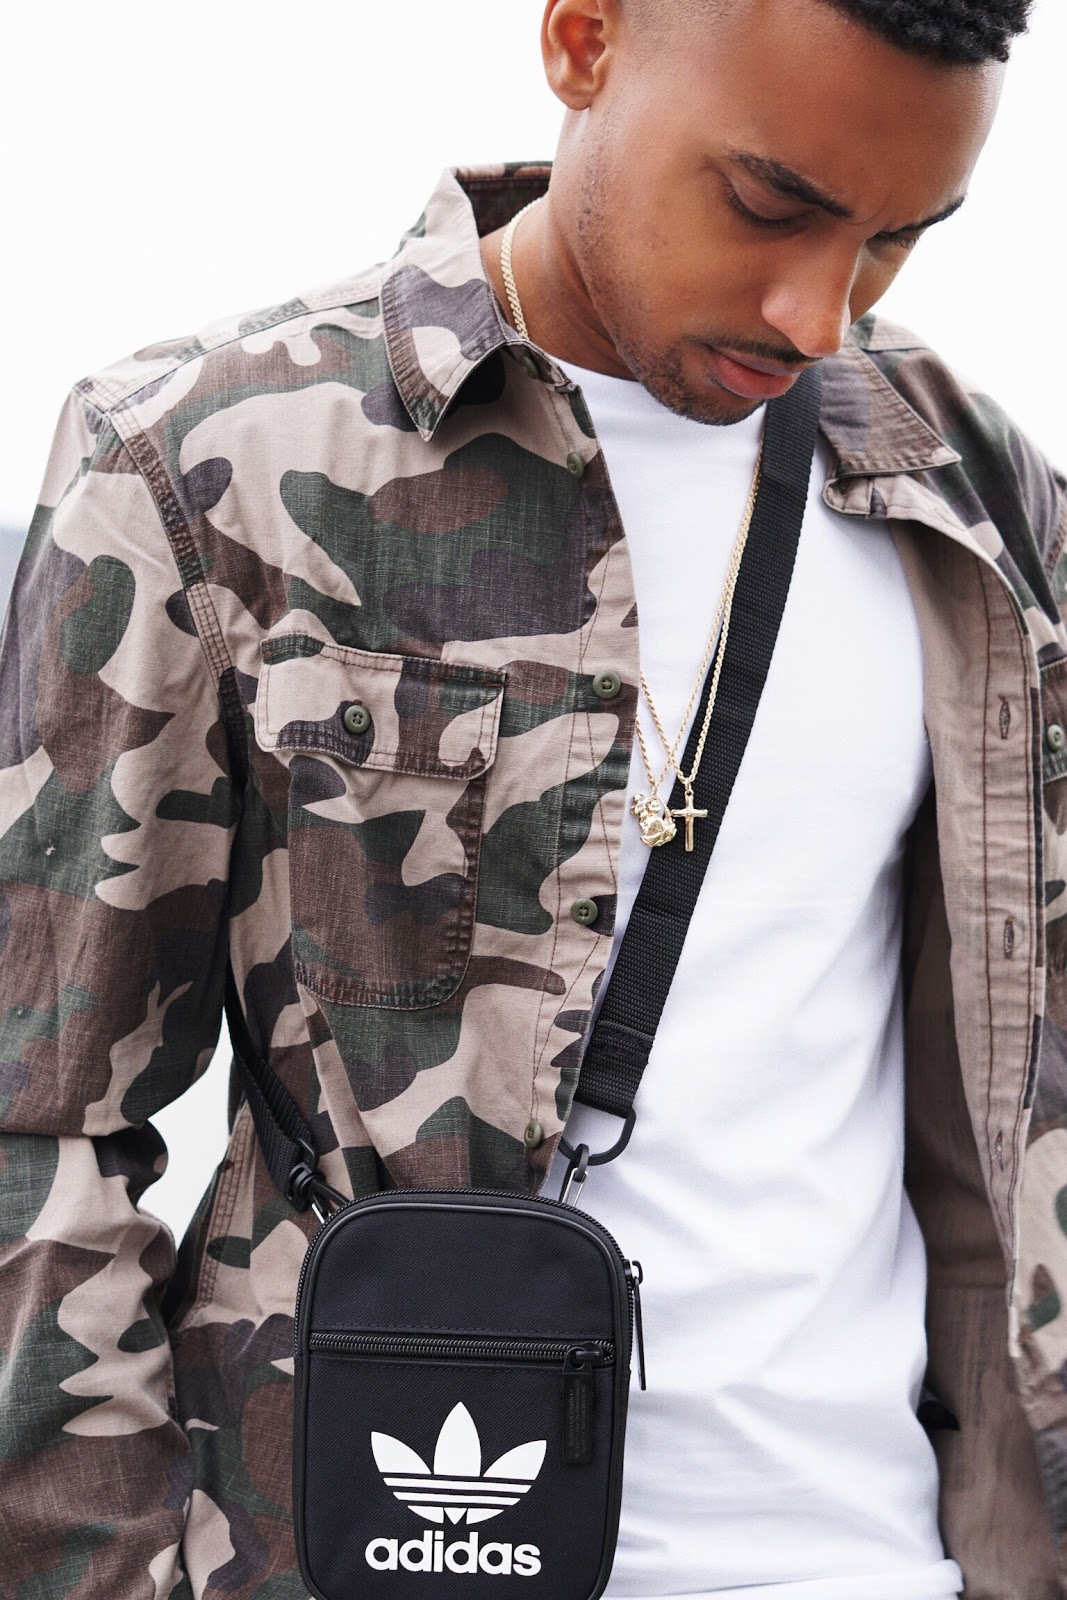 mens fashion crossbody bags bags guys should wear street style how to wear a crossbody bag